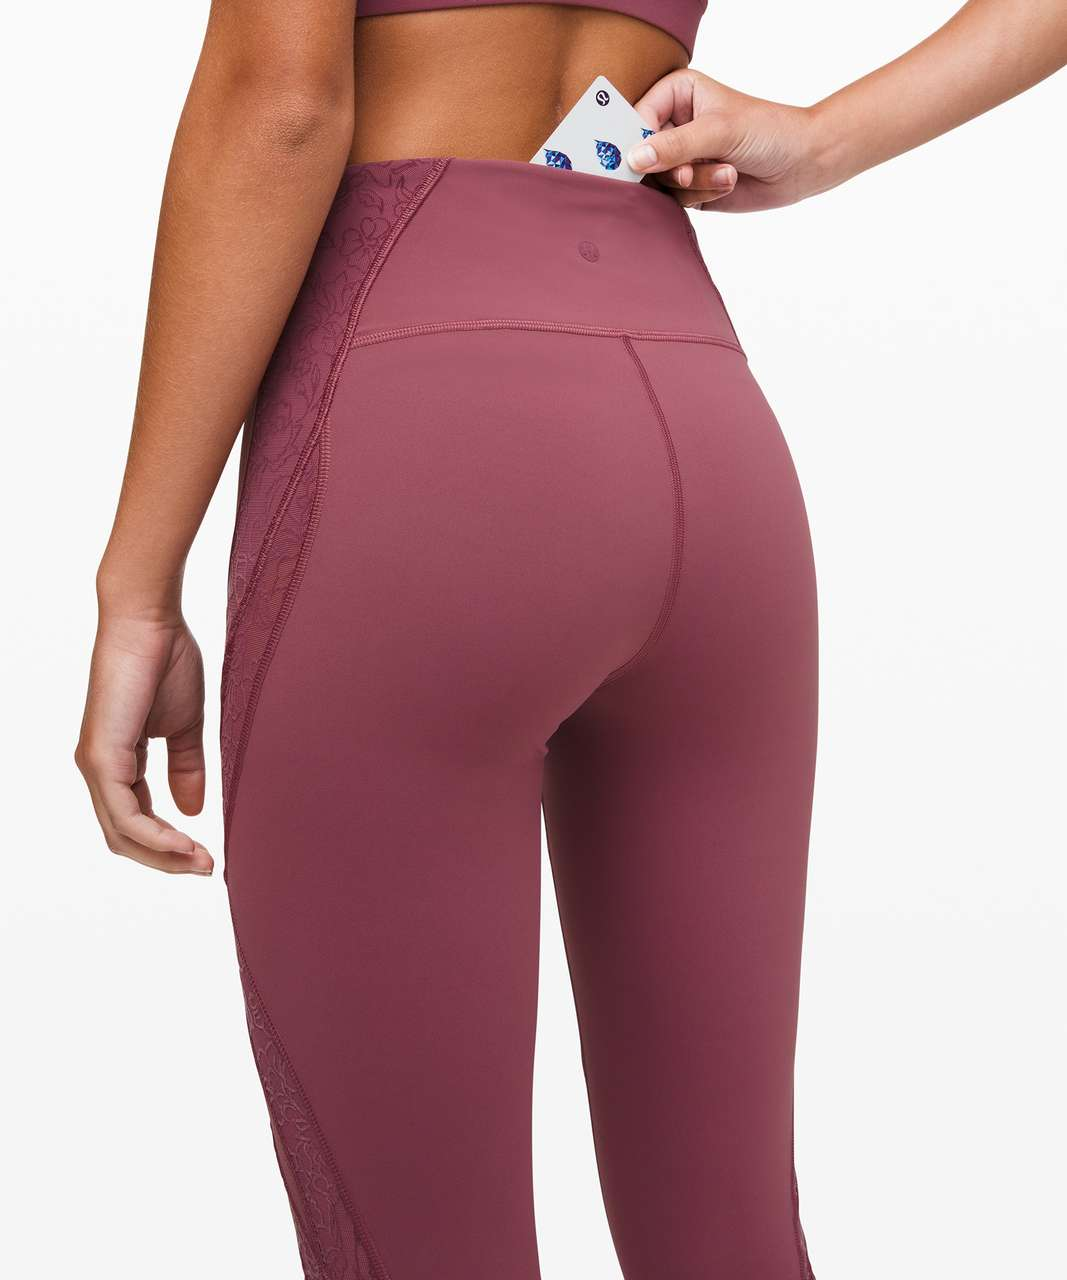 "Lululemon Wunder Under High-Rise Tight* Flocked 28"" - Plumful"